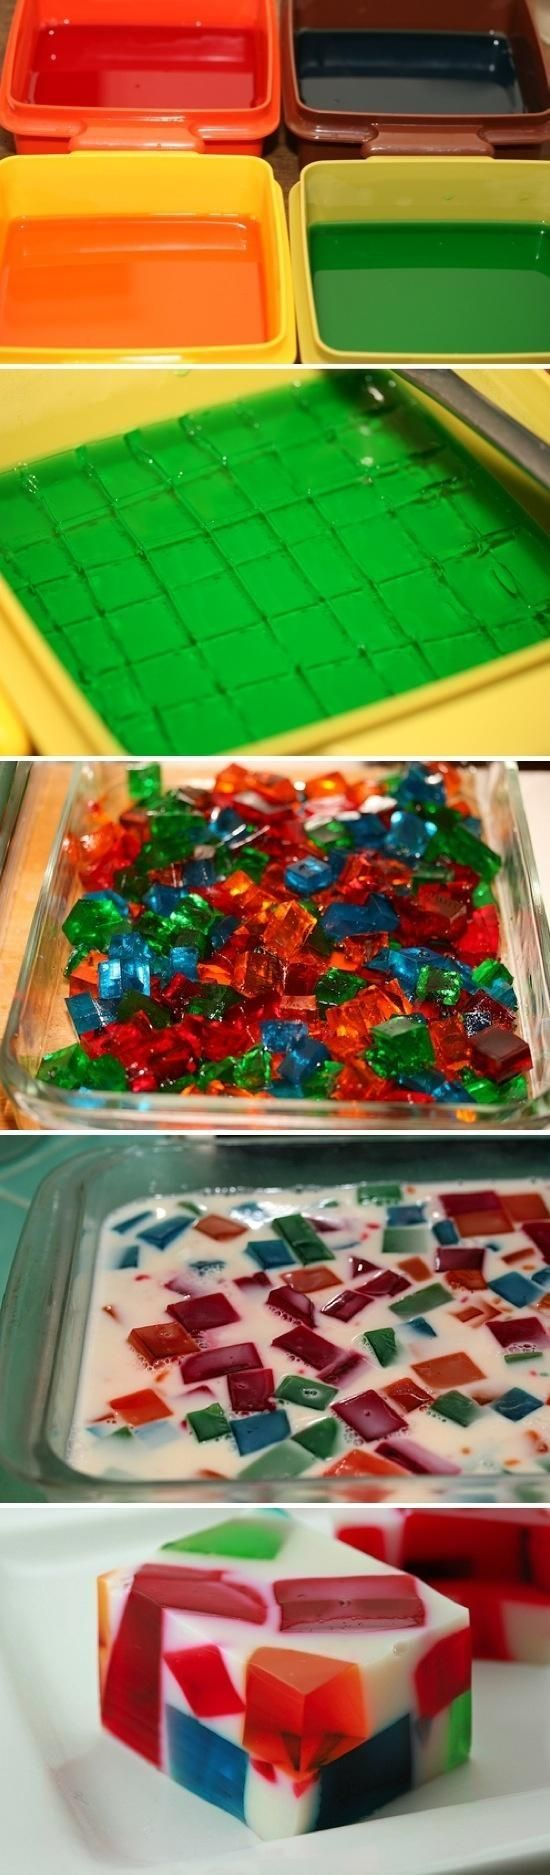 Broken Glass Jello - Joybx